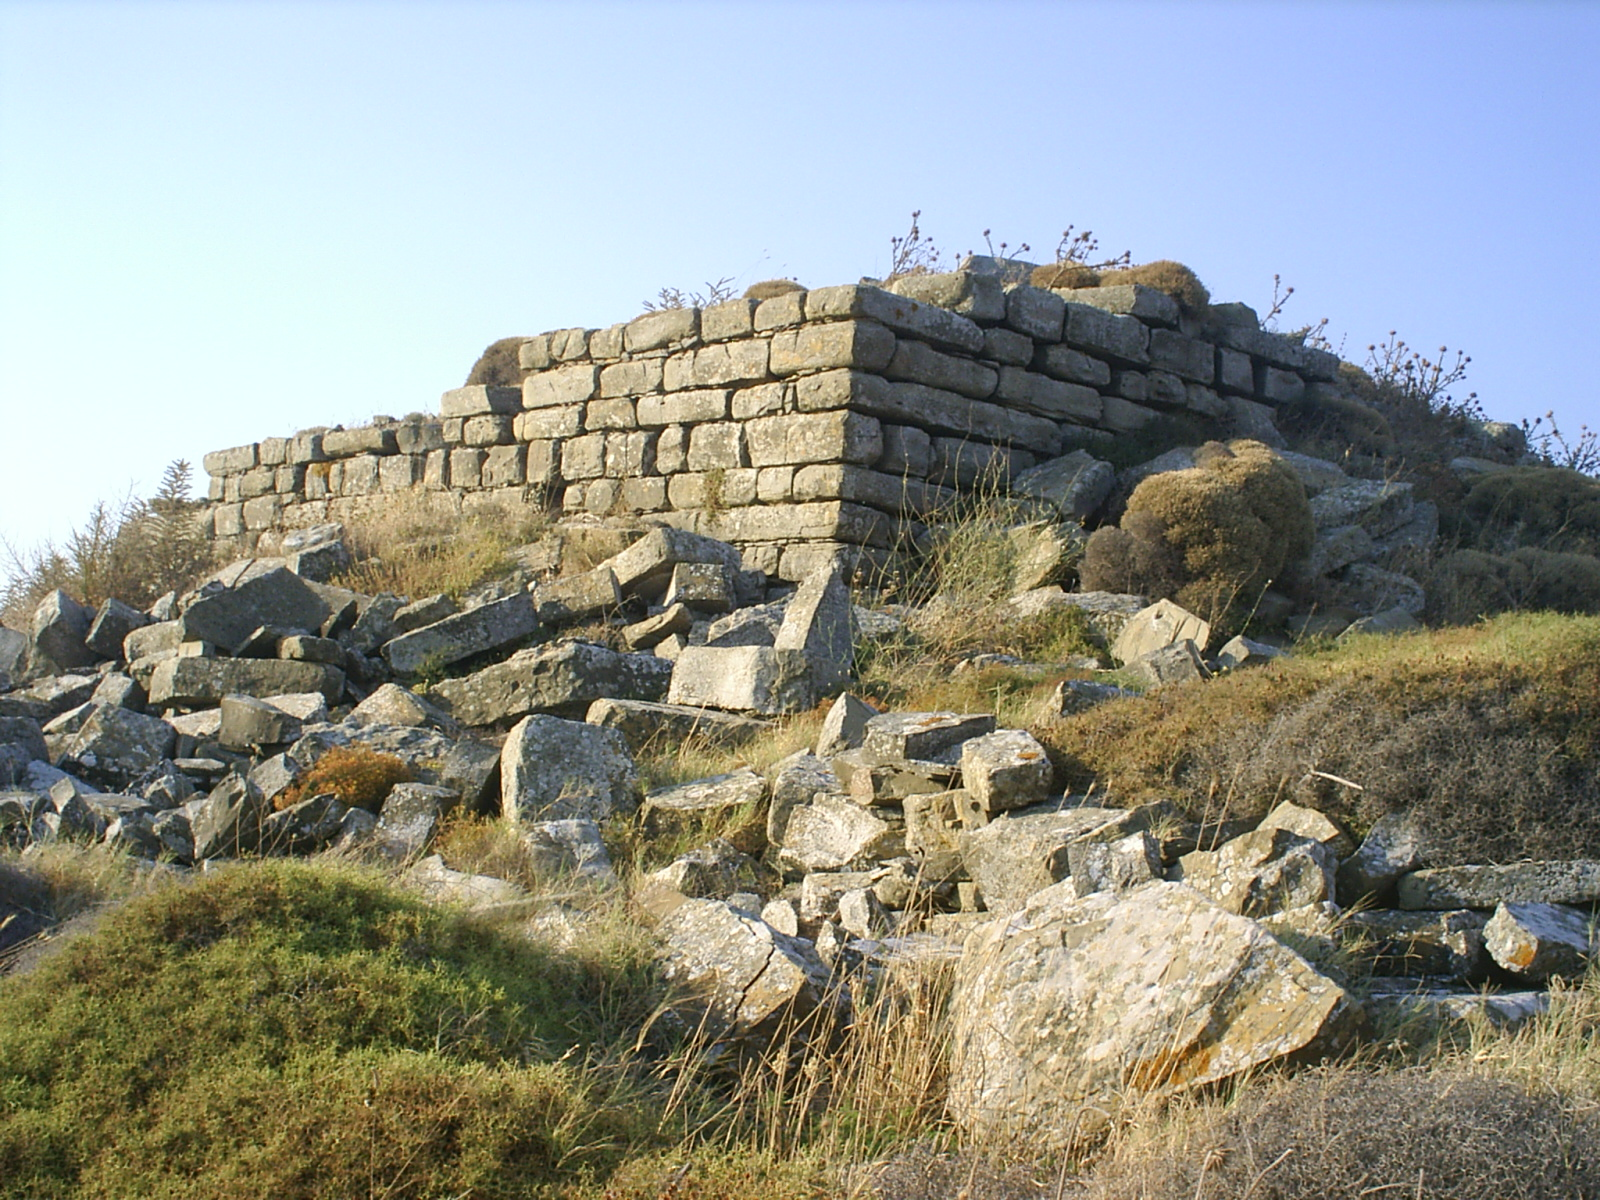 The tower of the medieval fortress in Skala village on Lemnos. Photo taken on May 14, 2007.